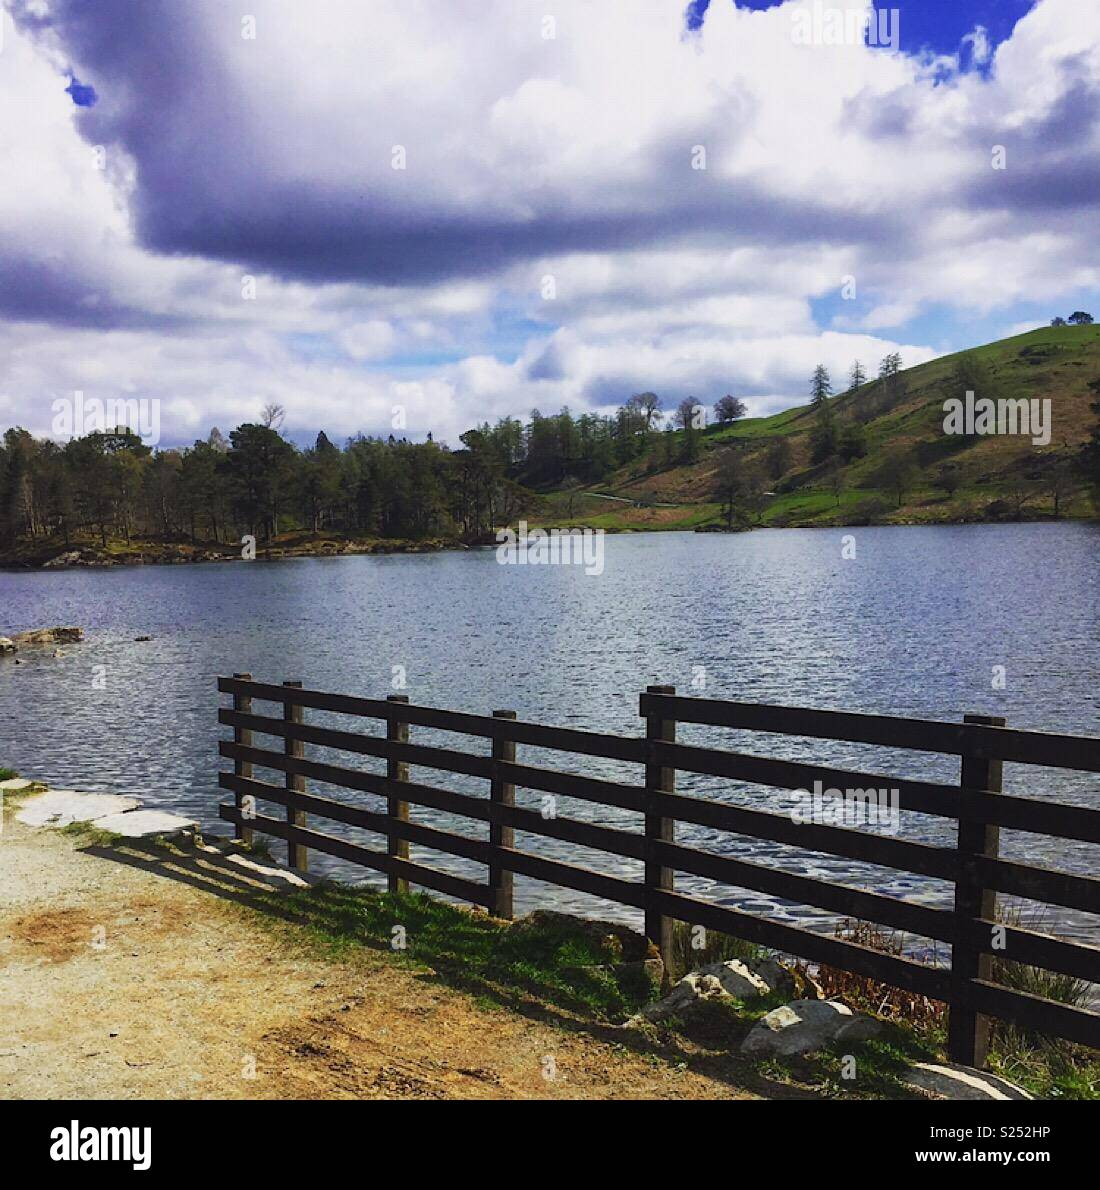 Tarn howes, relax - Stock Image